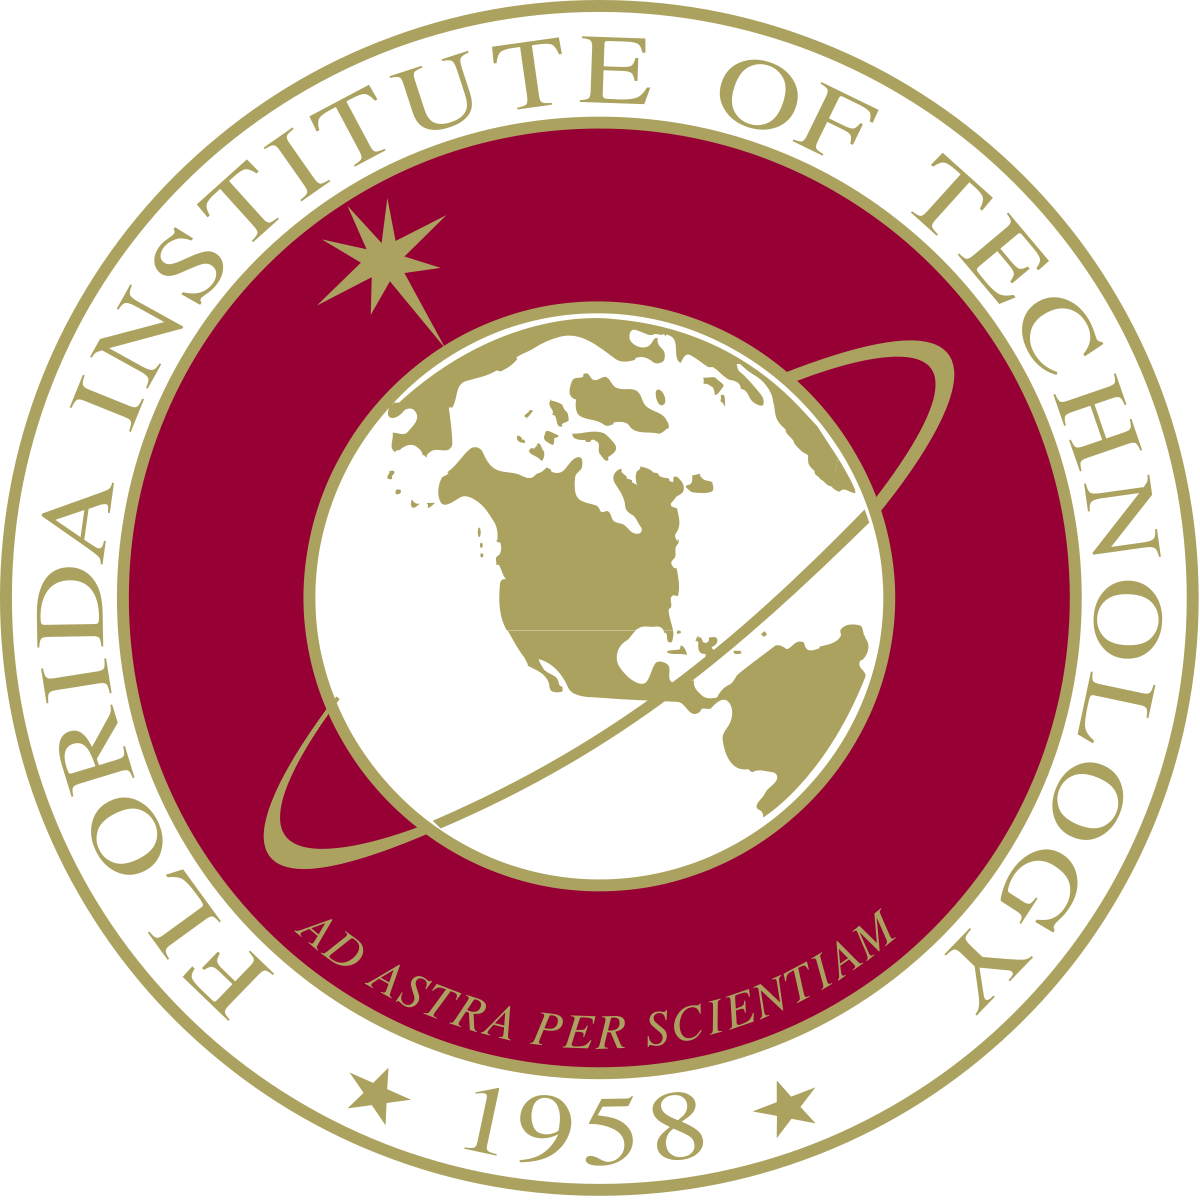 Florida tech logo png. Institute of technology wikipedia